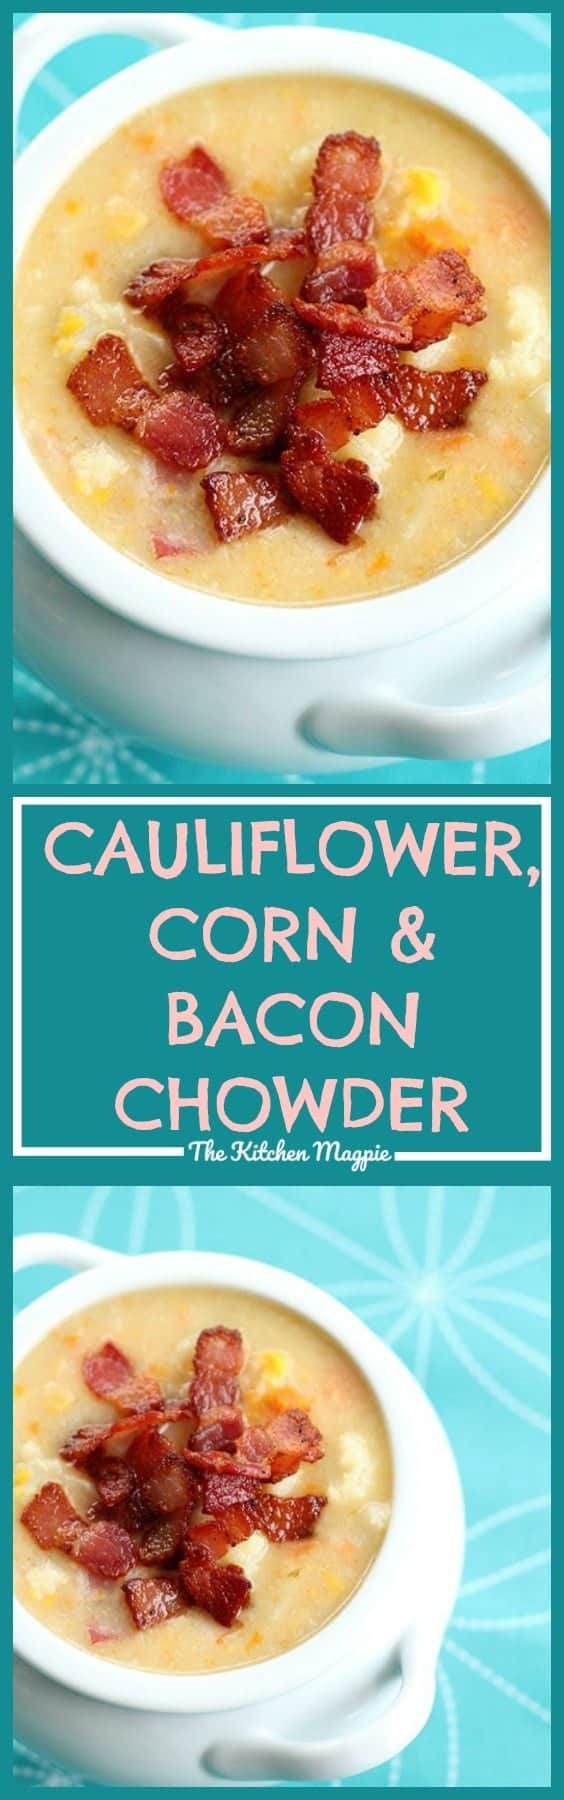 CAULIFLOWER, CORN & BACON CHOWDER from @kitchenmagpie